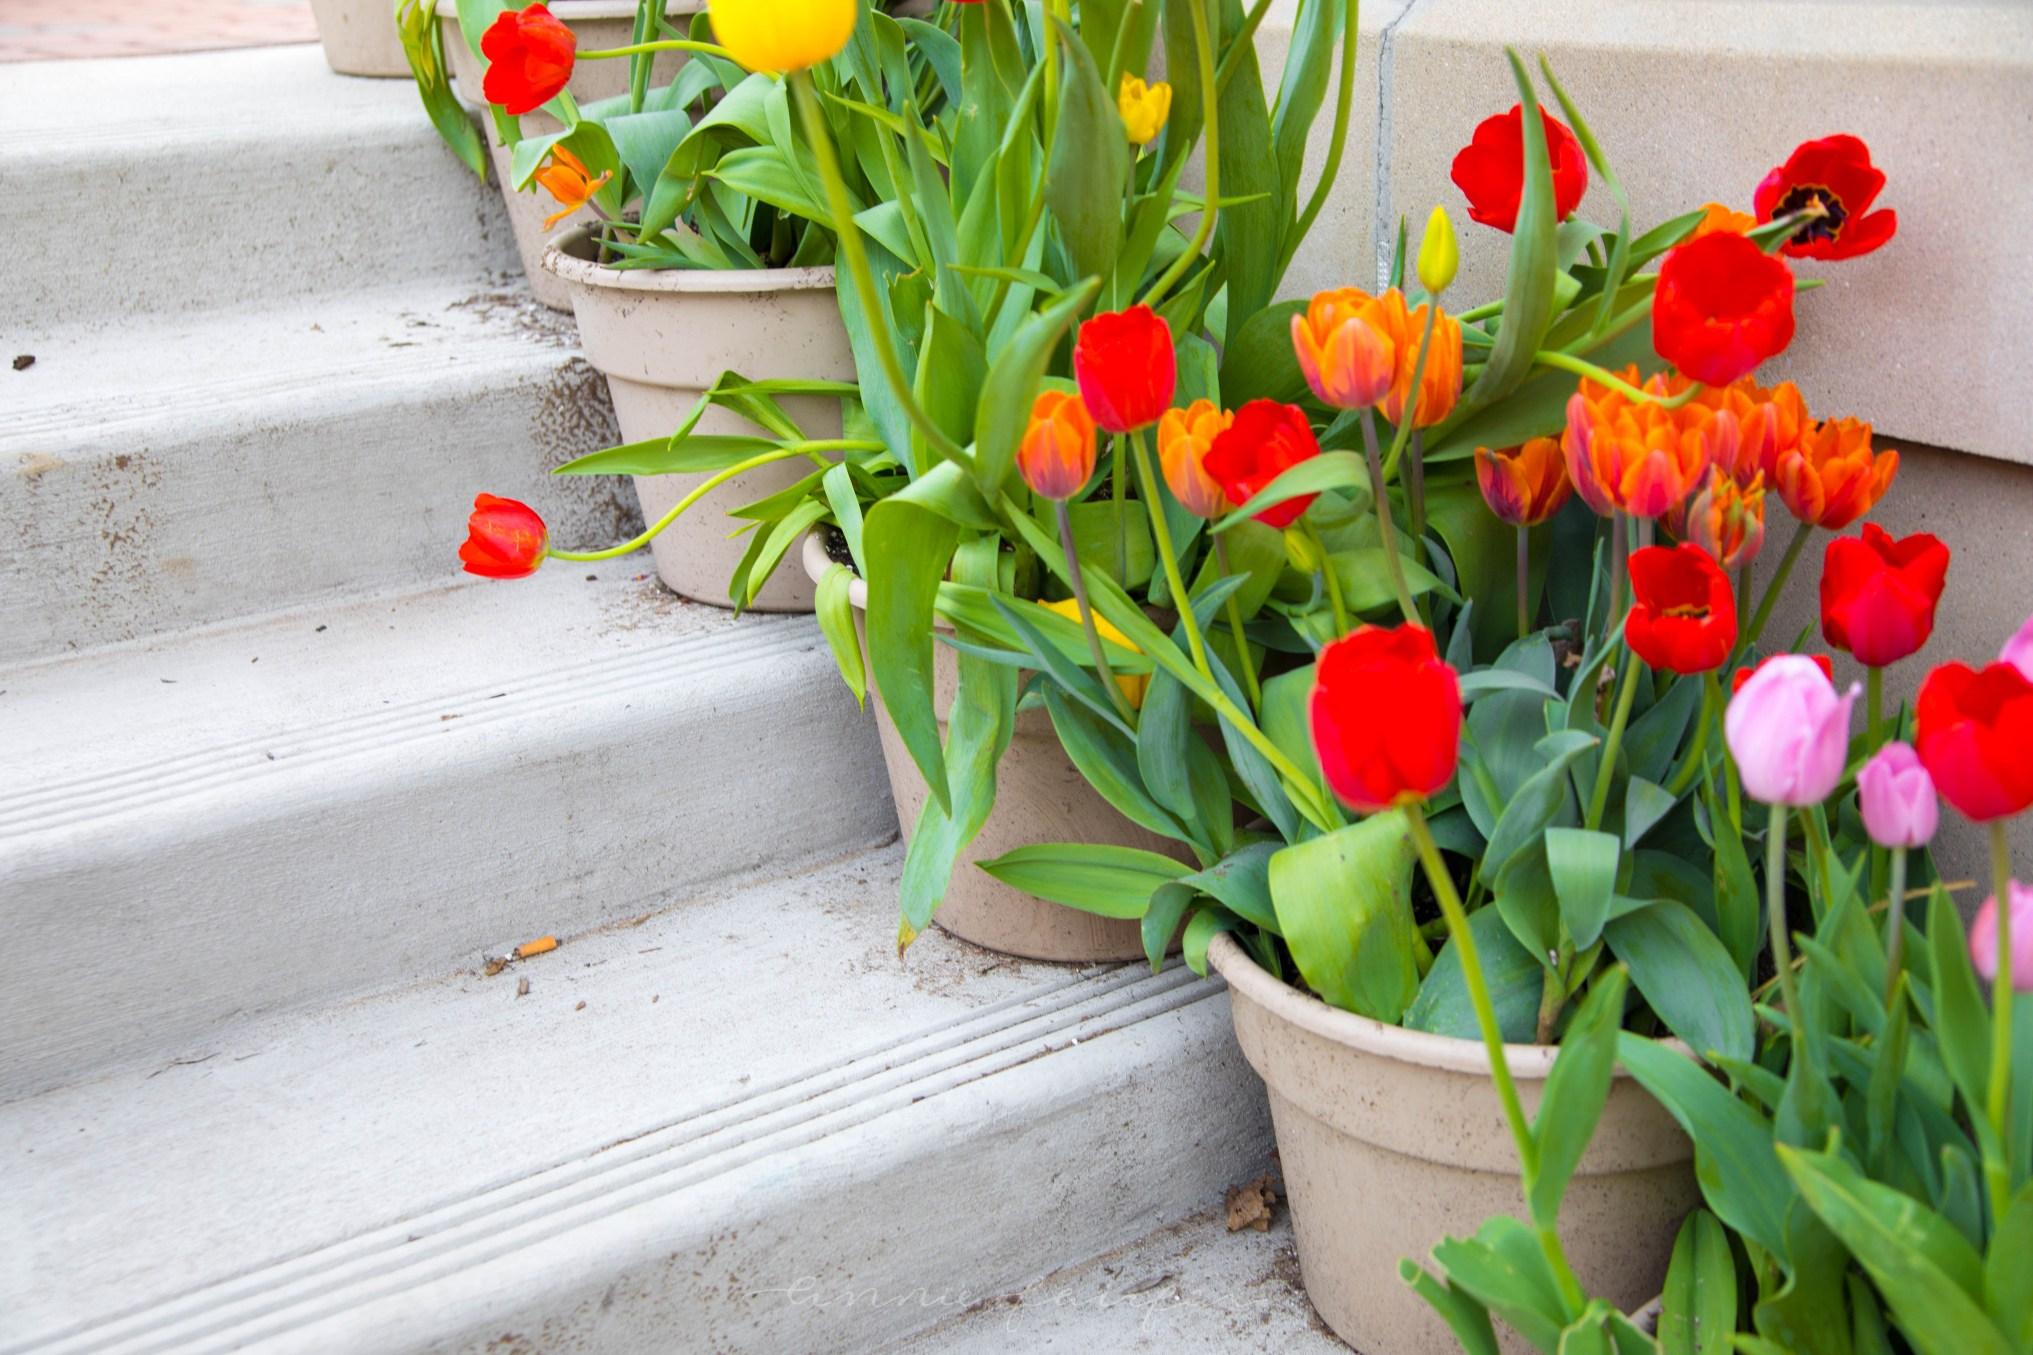 The Complete Guide to Holland's Tulip Time Festival